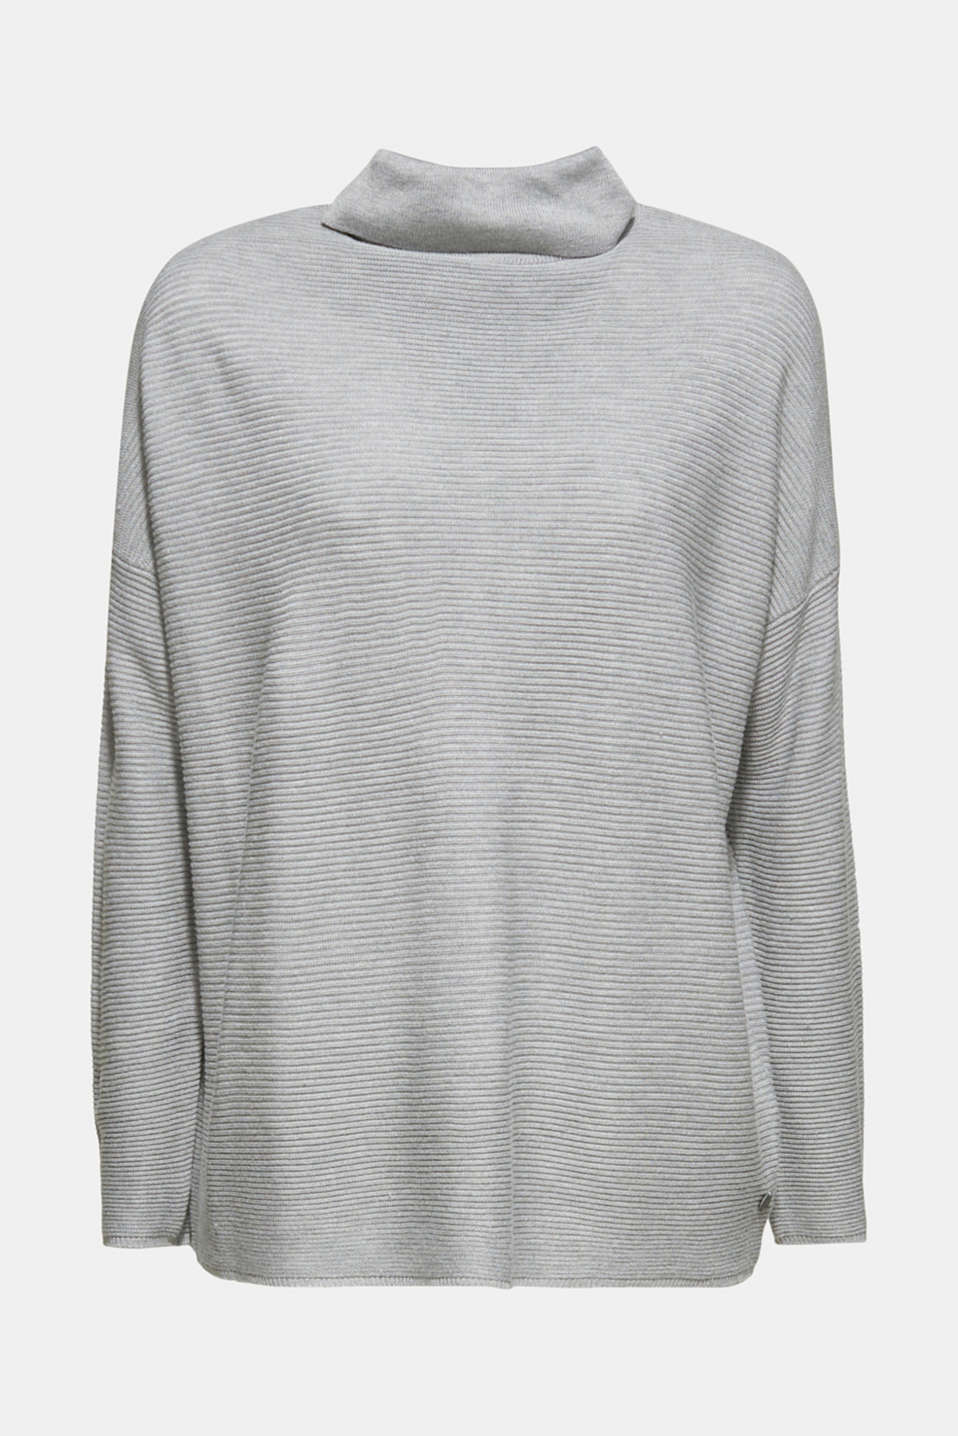 Oversized jumper with a ribbed texture, MEDIUM GREY 5, detail image number 6